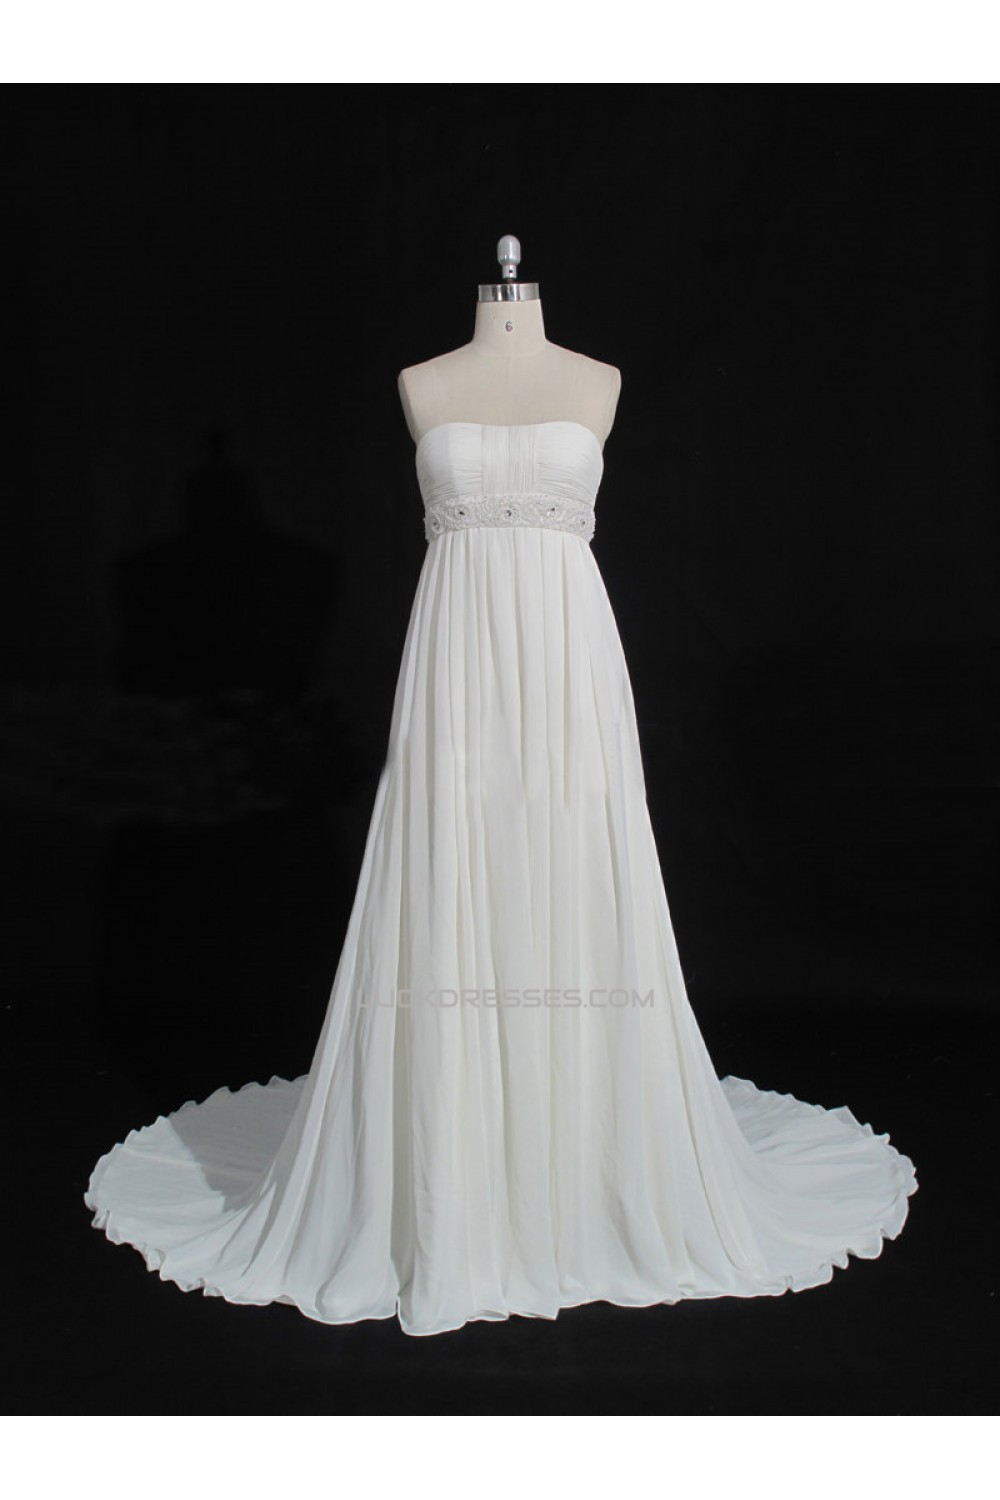 Empire Beaded Chiffon Maternity Bridal Gown Wedding Dress WD010473